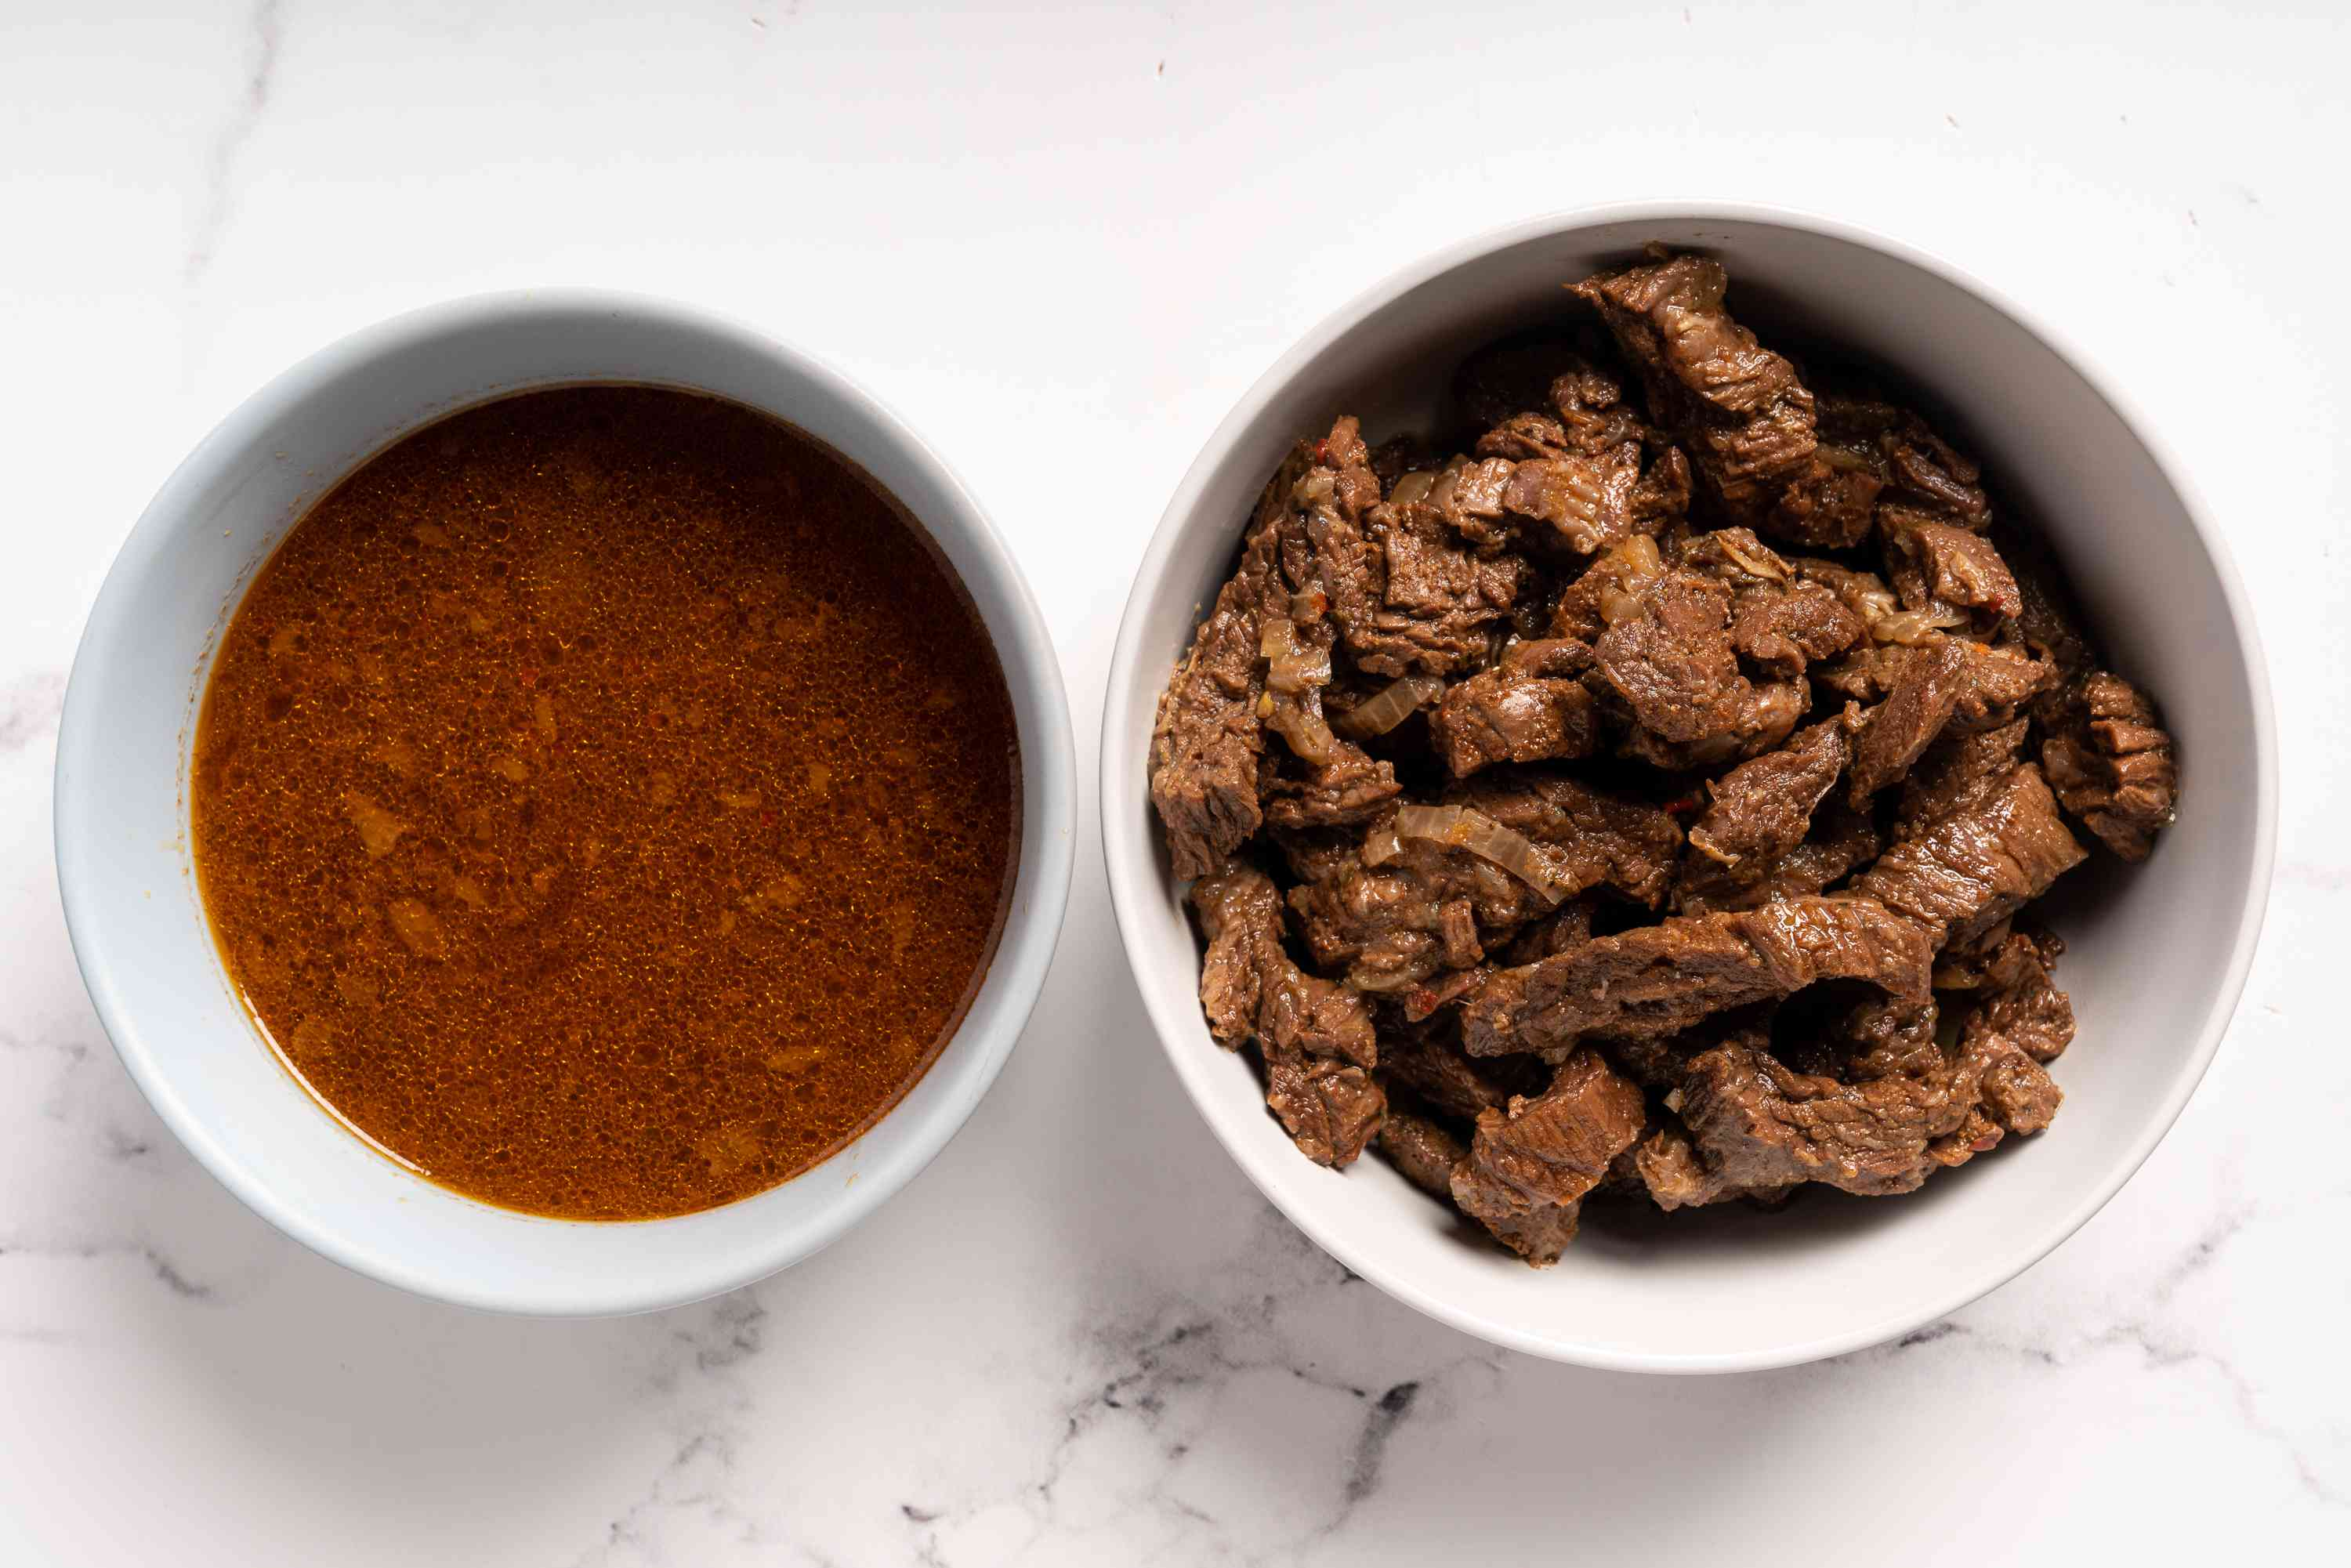 drain the beef, beef liquid in a bowl